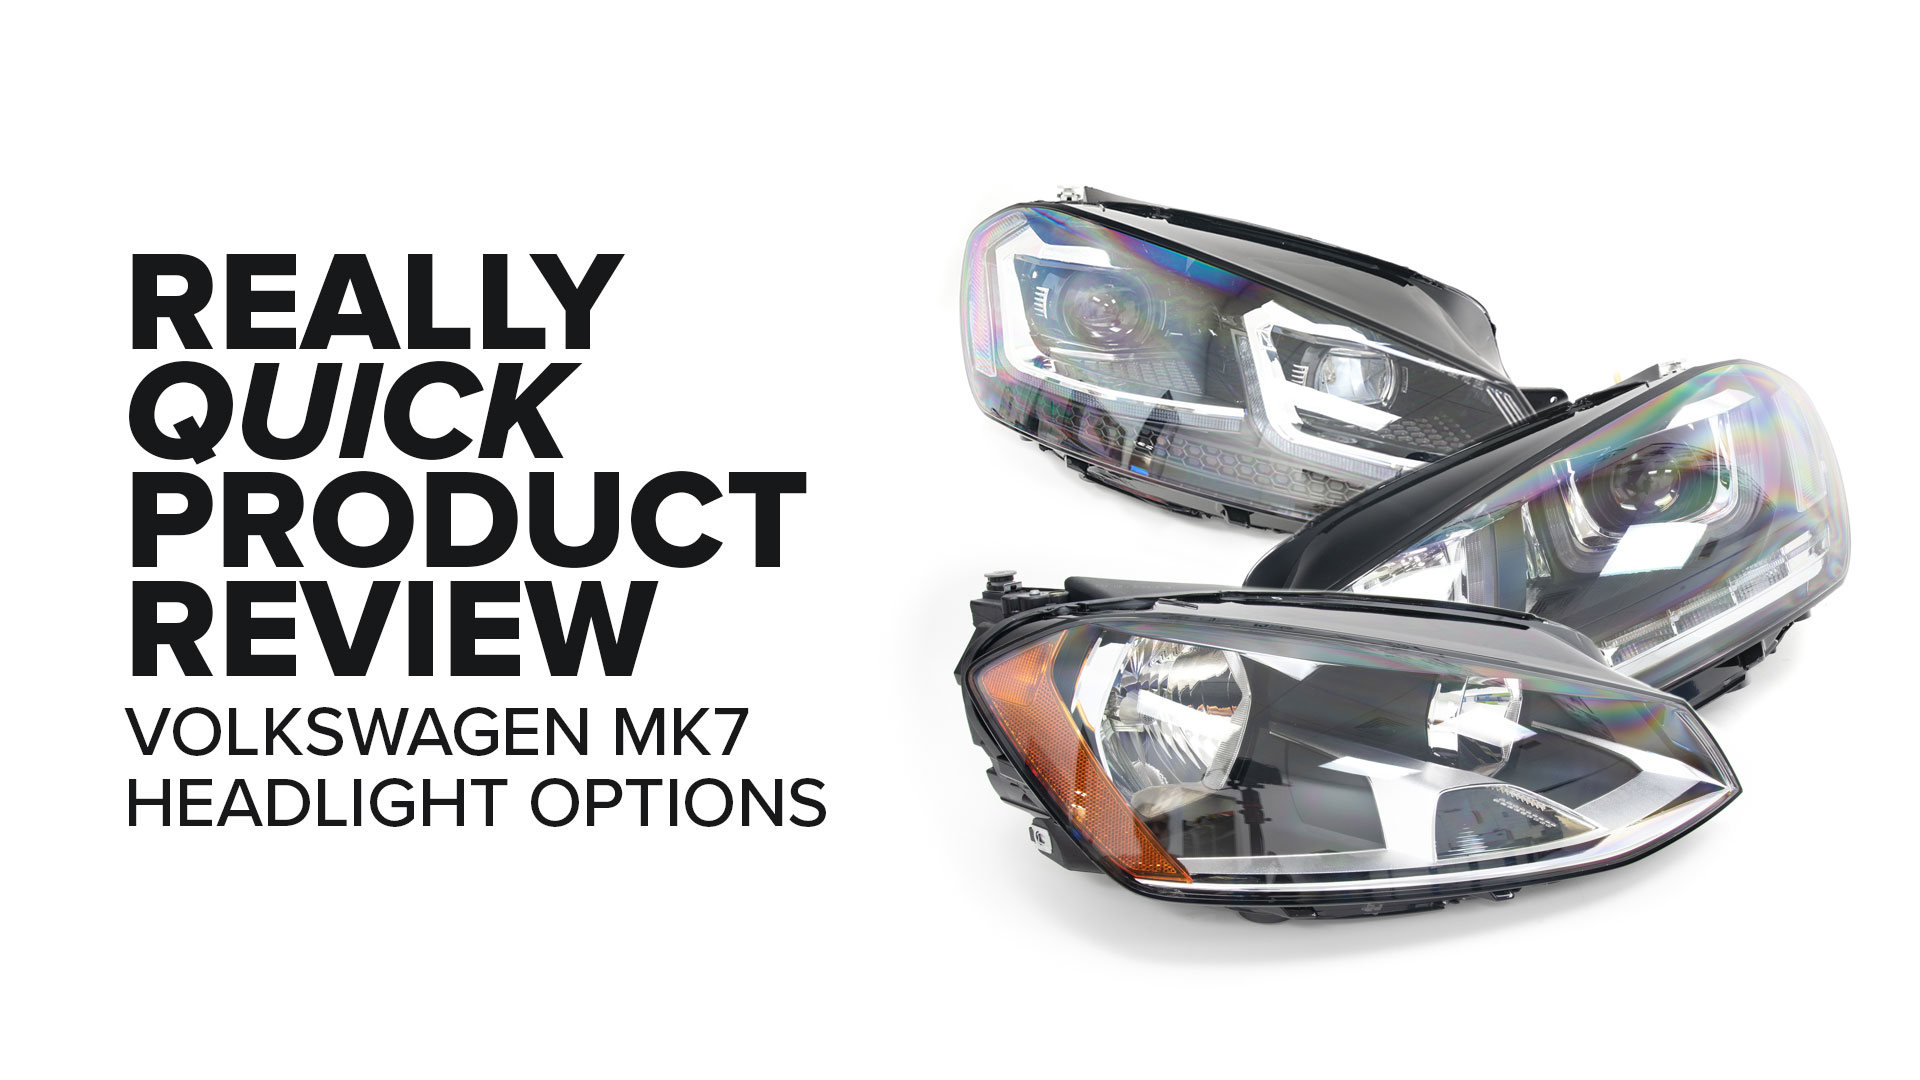 Volkswagen MK7 (GTI, Golf, & More) Headlight Upgrades - Options And Product Review